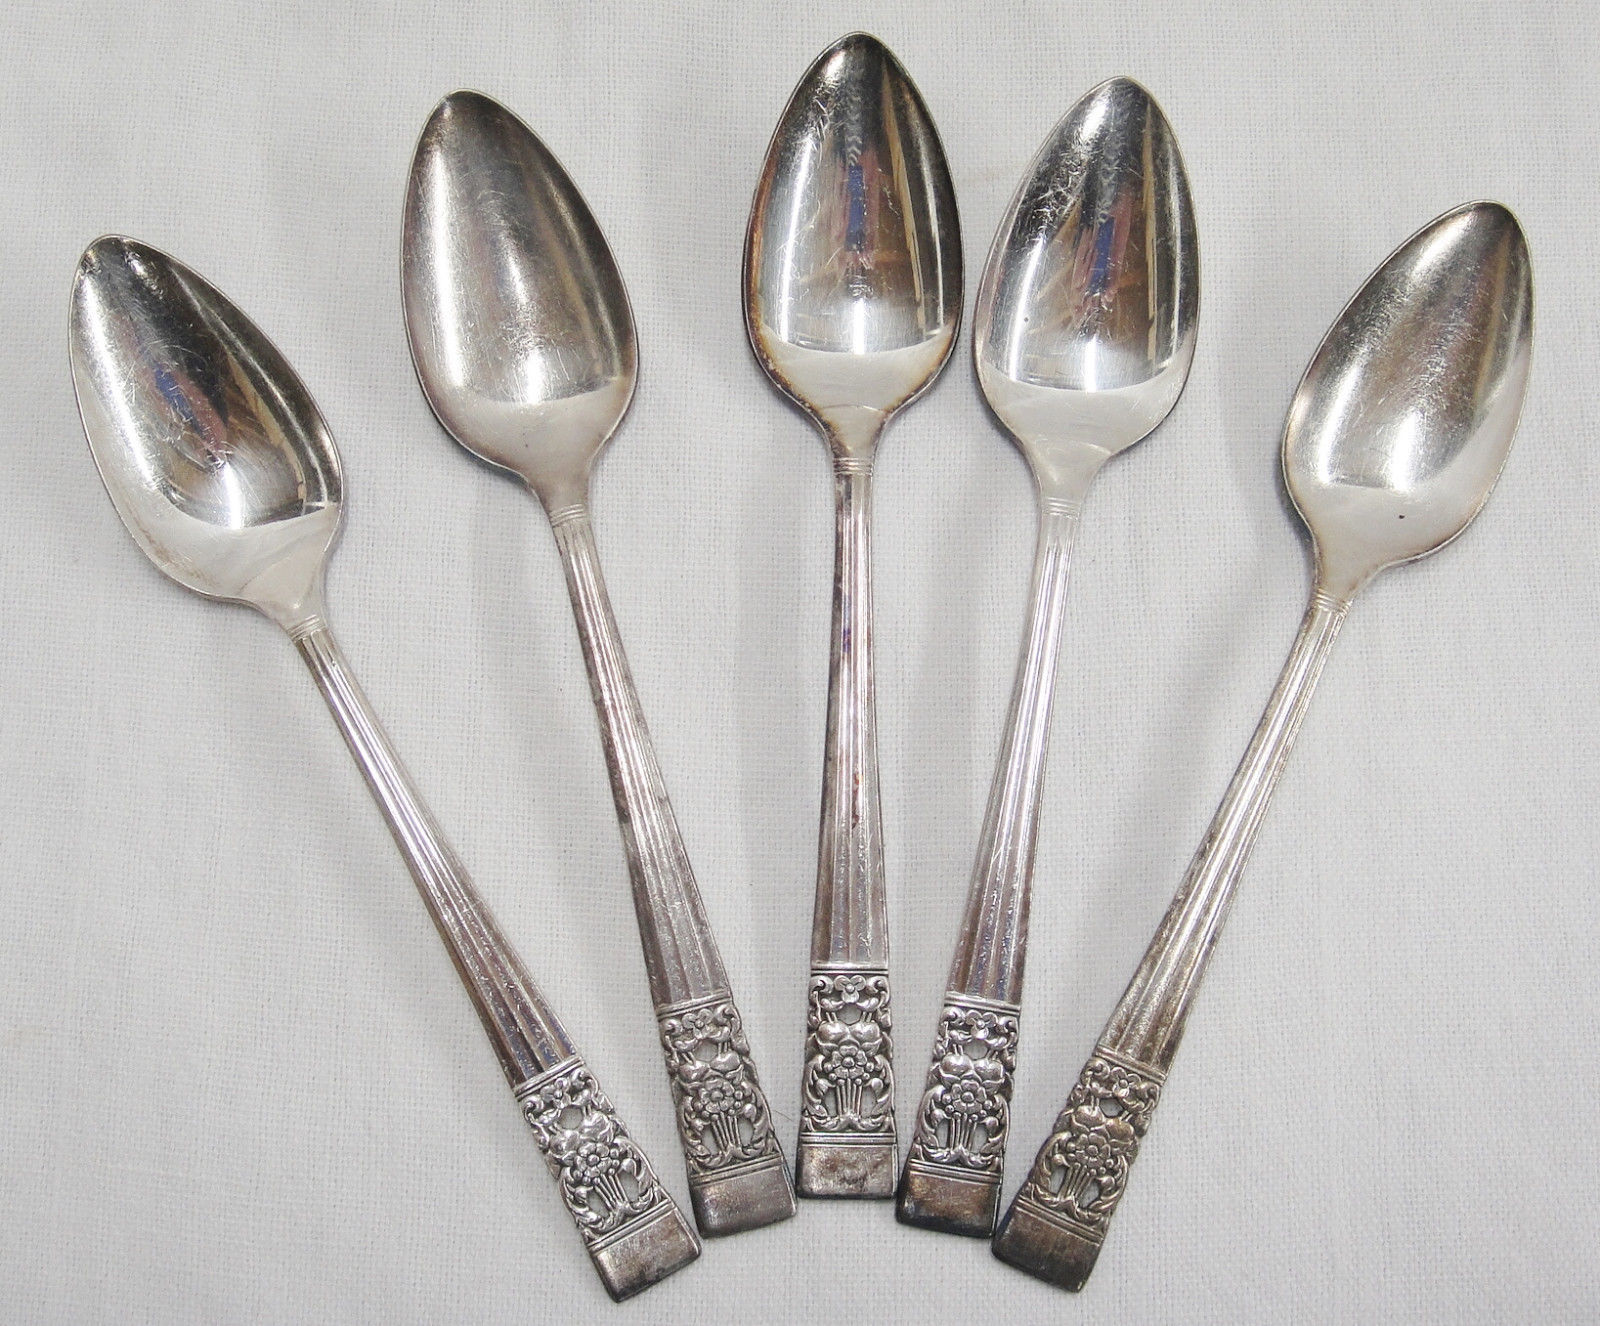 Oneida Community Coronation Silverplate and 18 similar items